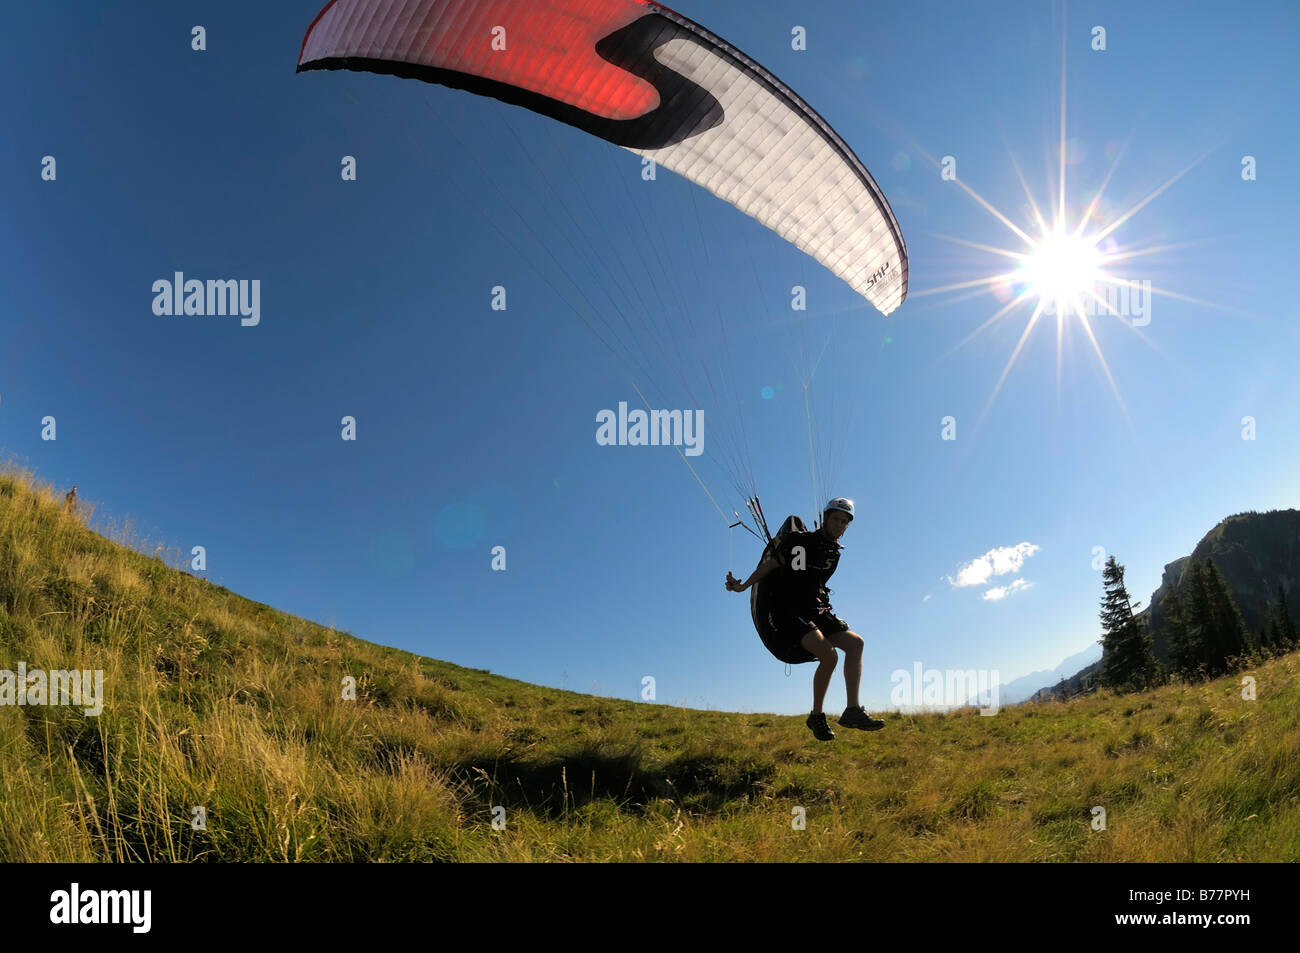 Décollage parapente, rétroéclairé, prise grand angle, Brauneck, Upper Bavaria, Germany, Europe Photo Stock